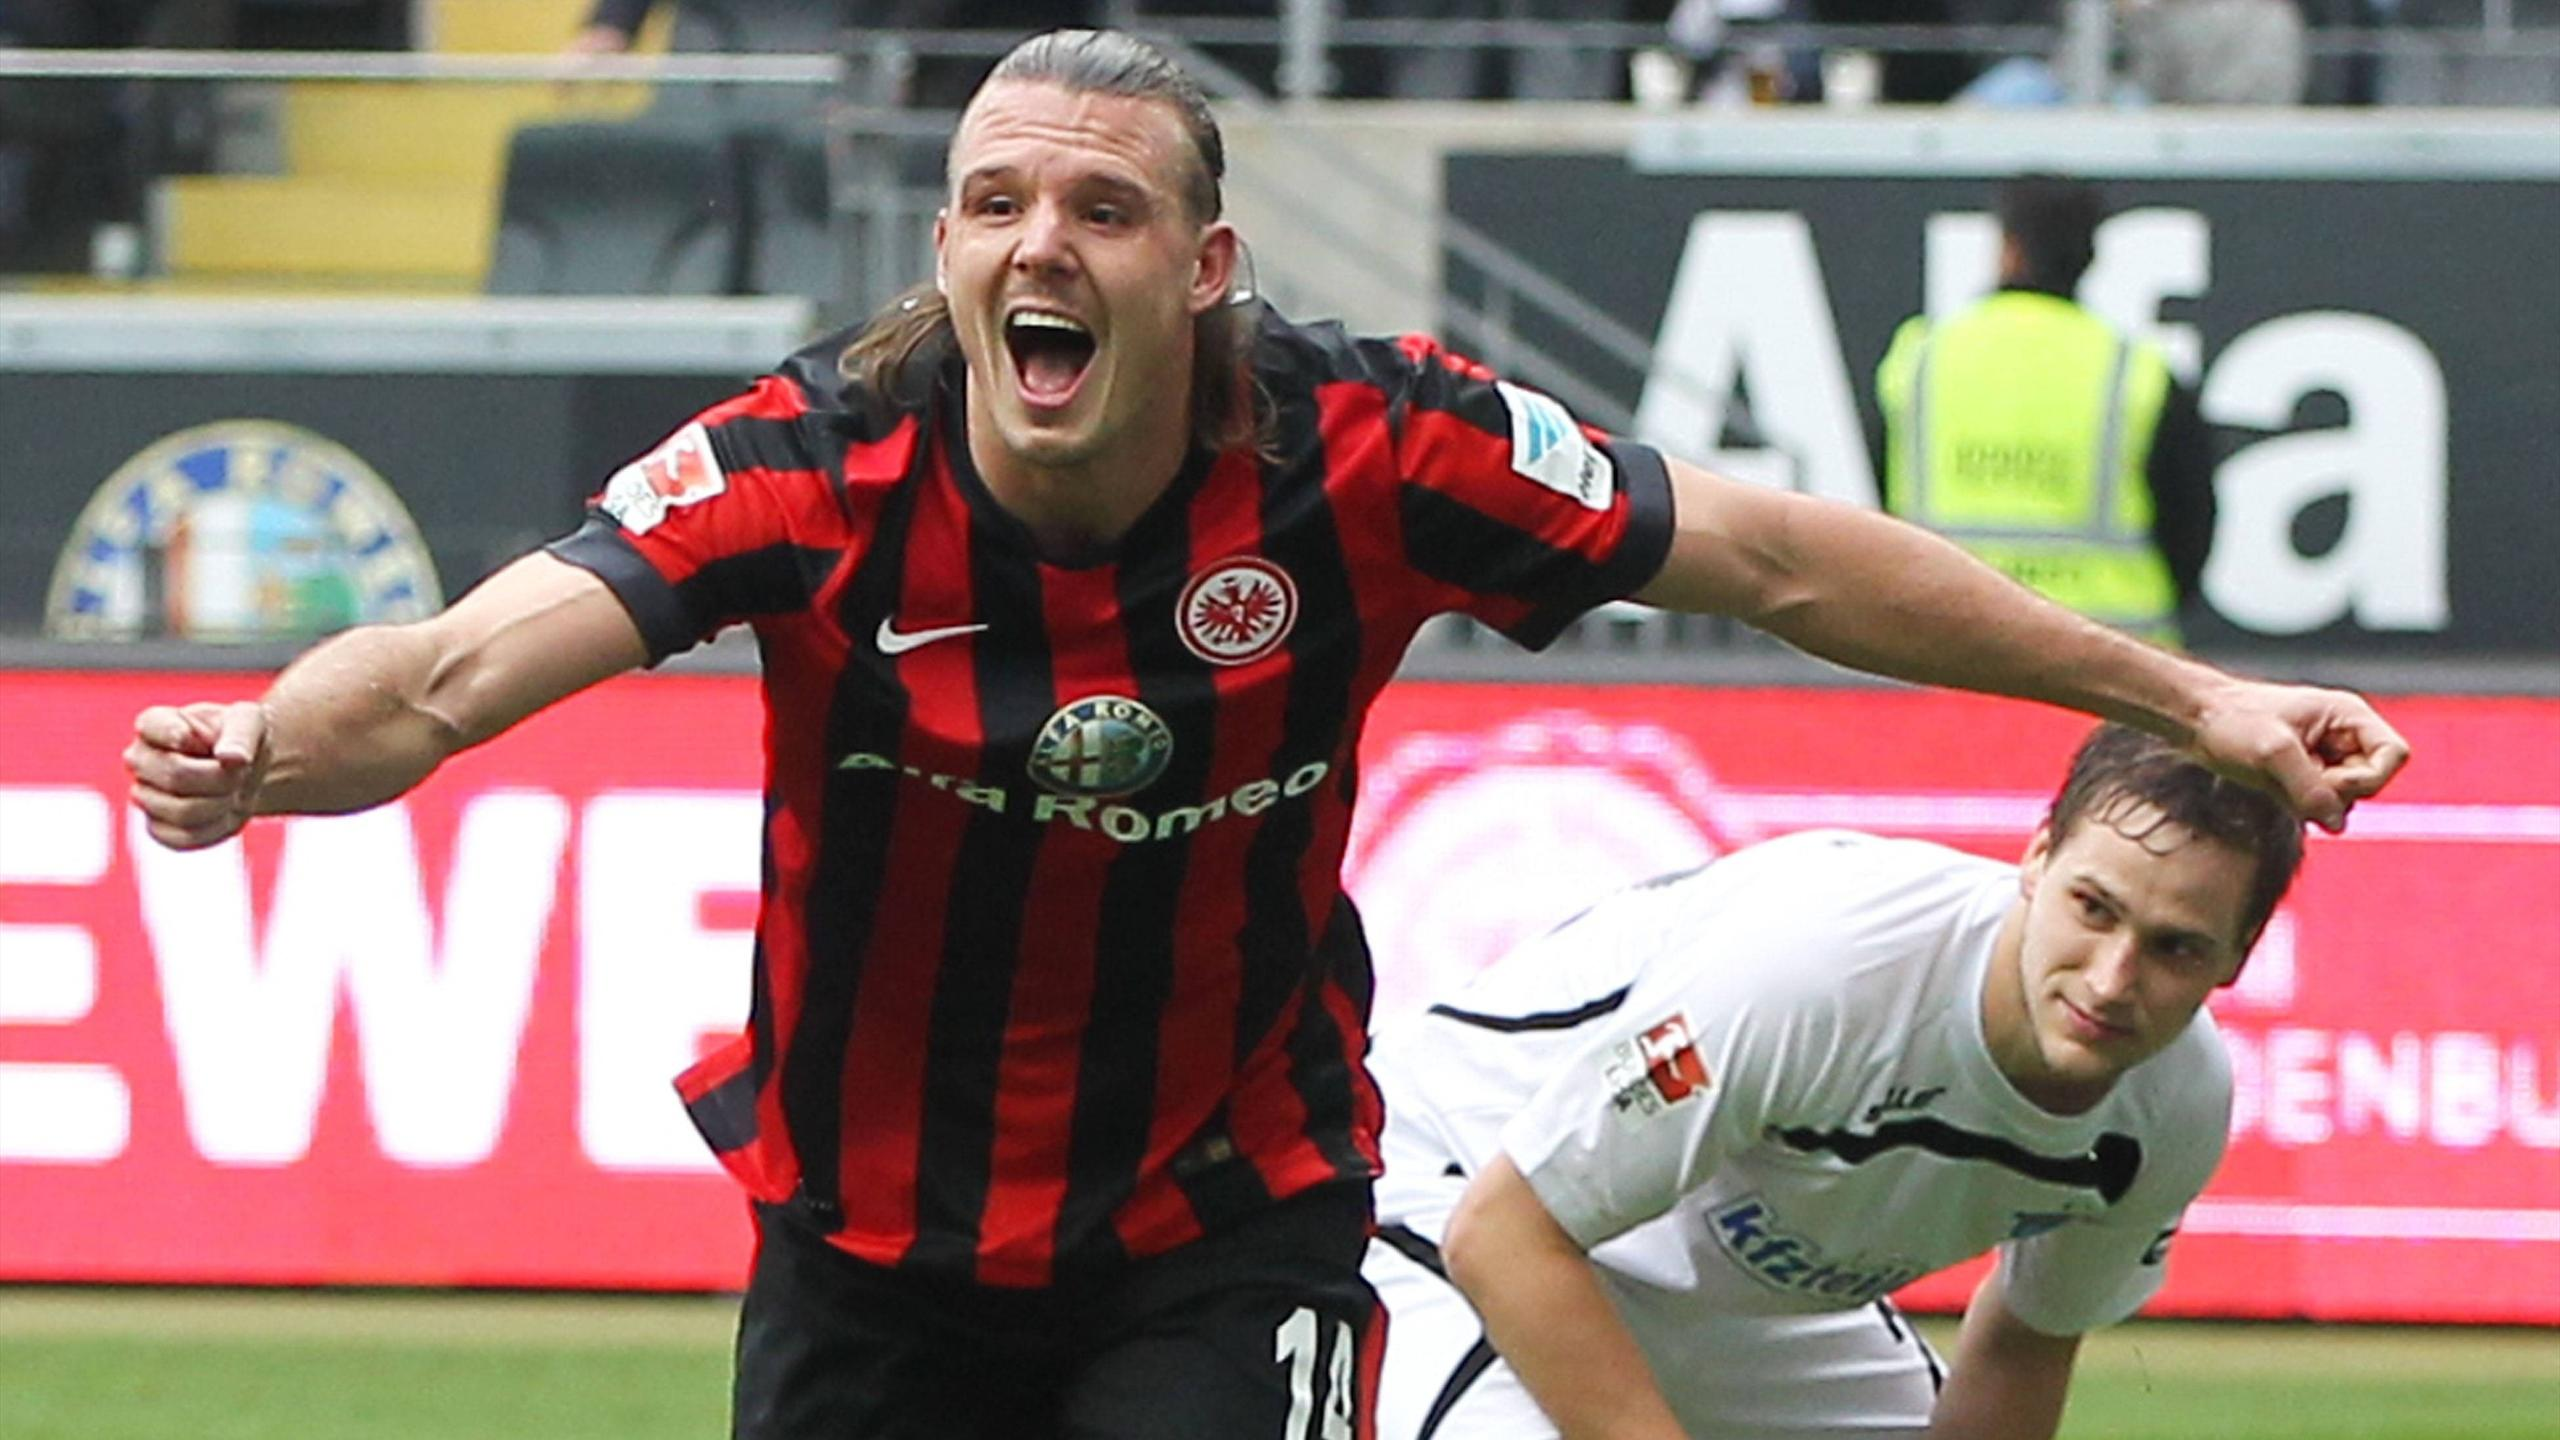 Video: Eintracht Frankfurt vs Paderborn